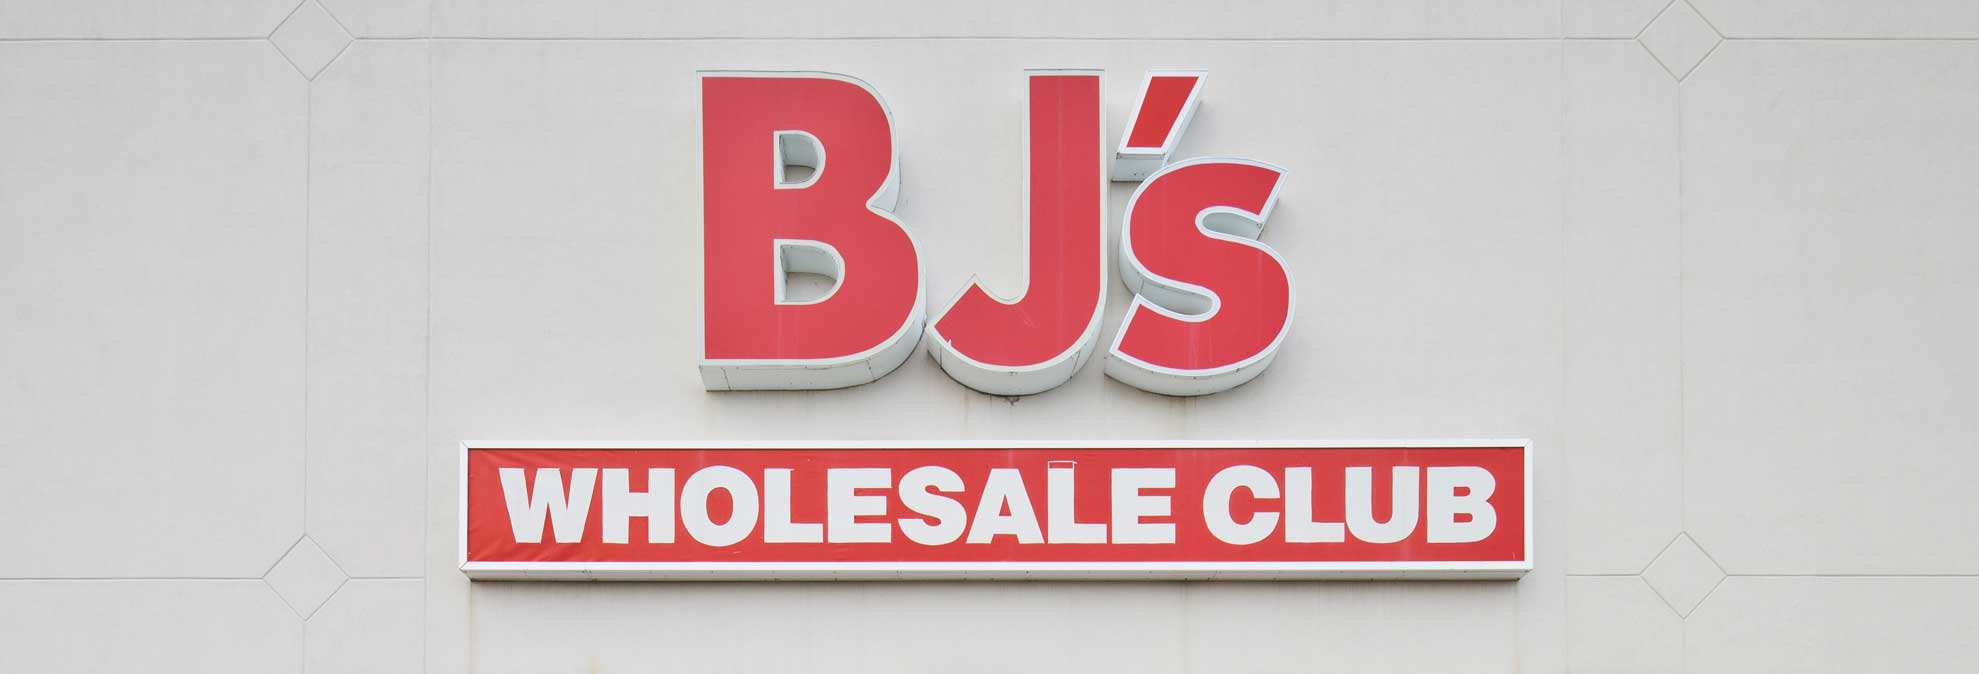 How Good Are BJ's Black Friday TV Deals? - Consumer Reports